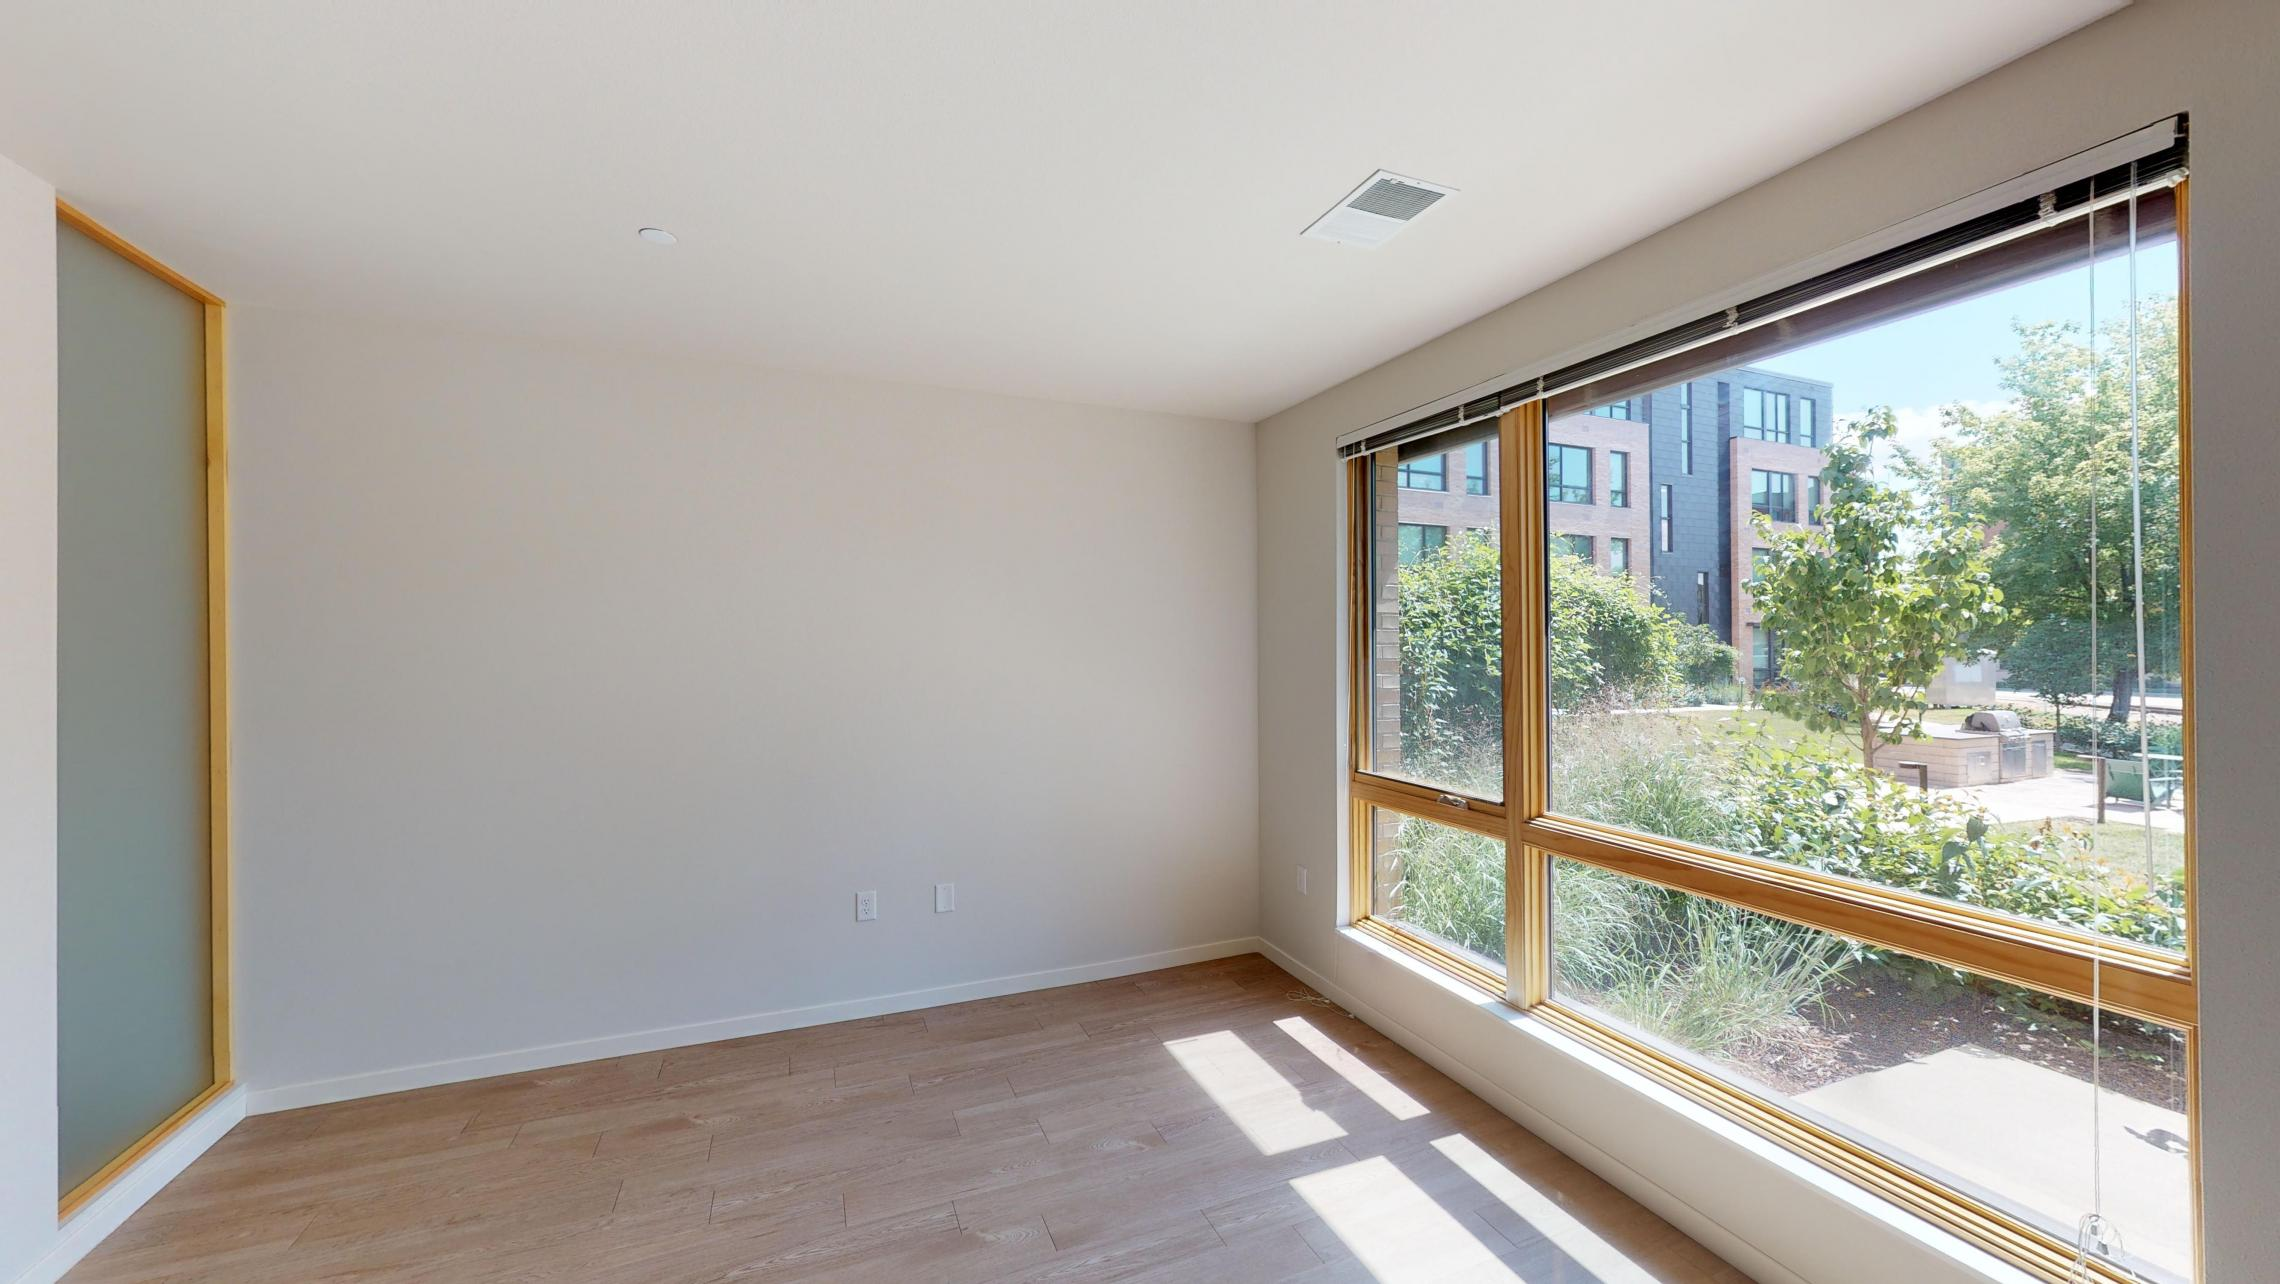 Quarter-Row-Yards-Apartment-118-One-Bedroom-Patio-Modern-Upscale-Fitness-Lounge-Courtyard-Grill-Fireplace-View-Bike-Trail